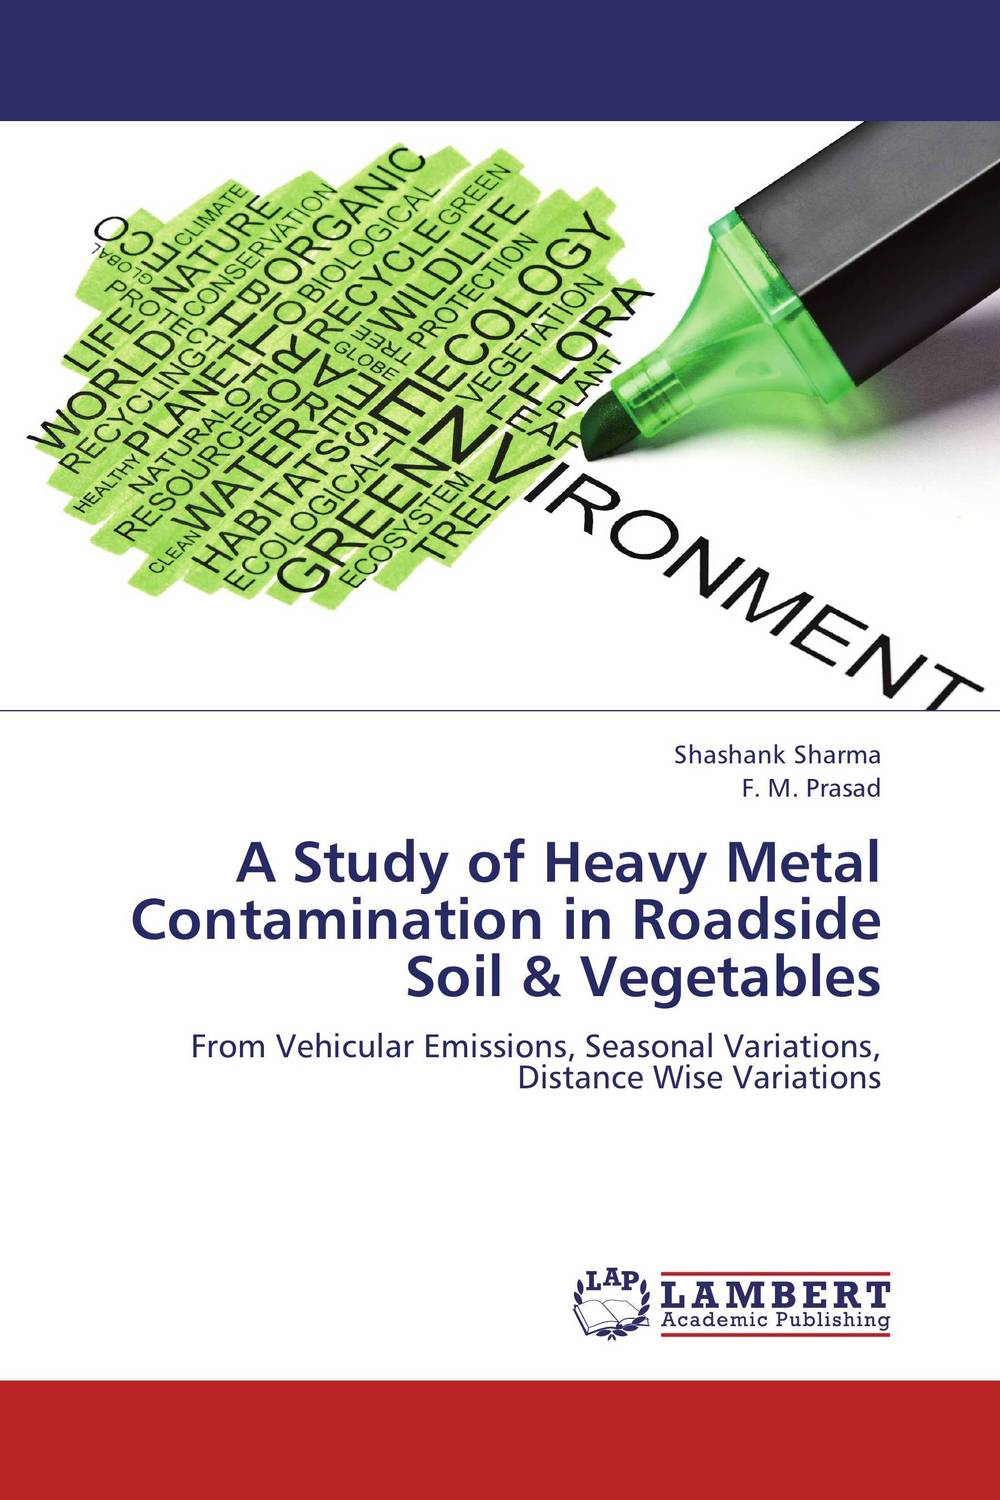 A Study of Heavy Metal Contamination in Roadside Soil & Vegetables marwan a ibrahim effect of heavy metals on haematological and testicular functions